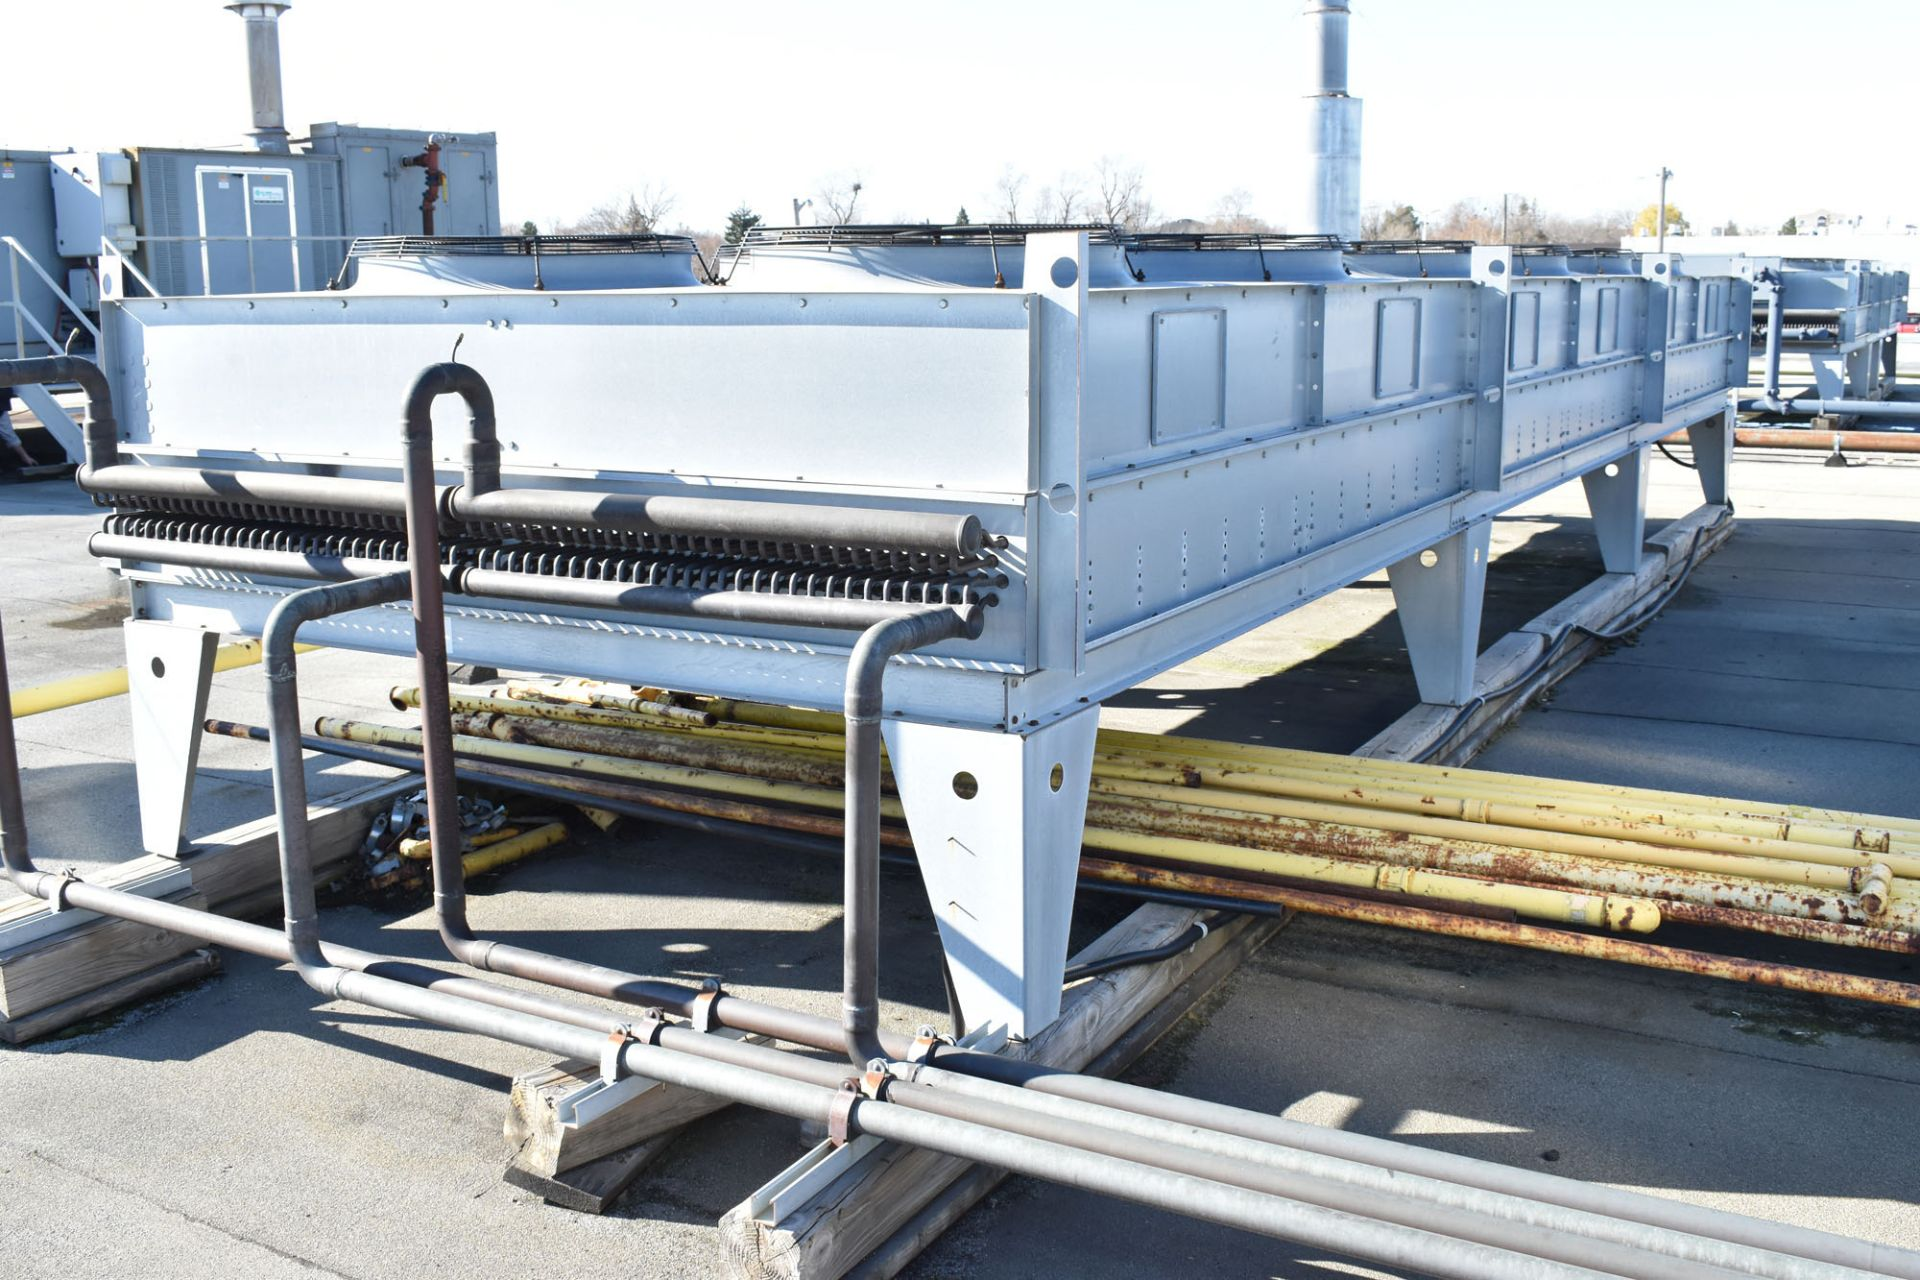 BERG AQR-160-2/2 SKID-MOUNTED INDUSTRIAL CHILLER WITH 160 TON CAPACITY, 178 HP, BERG SC6 TOUCH- - Image 10 of 13